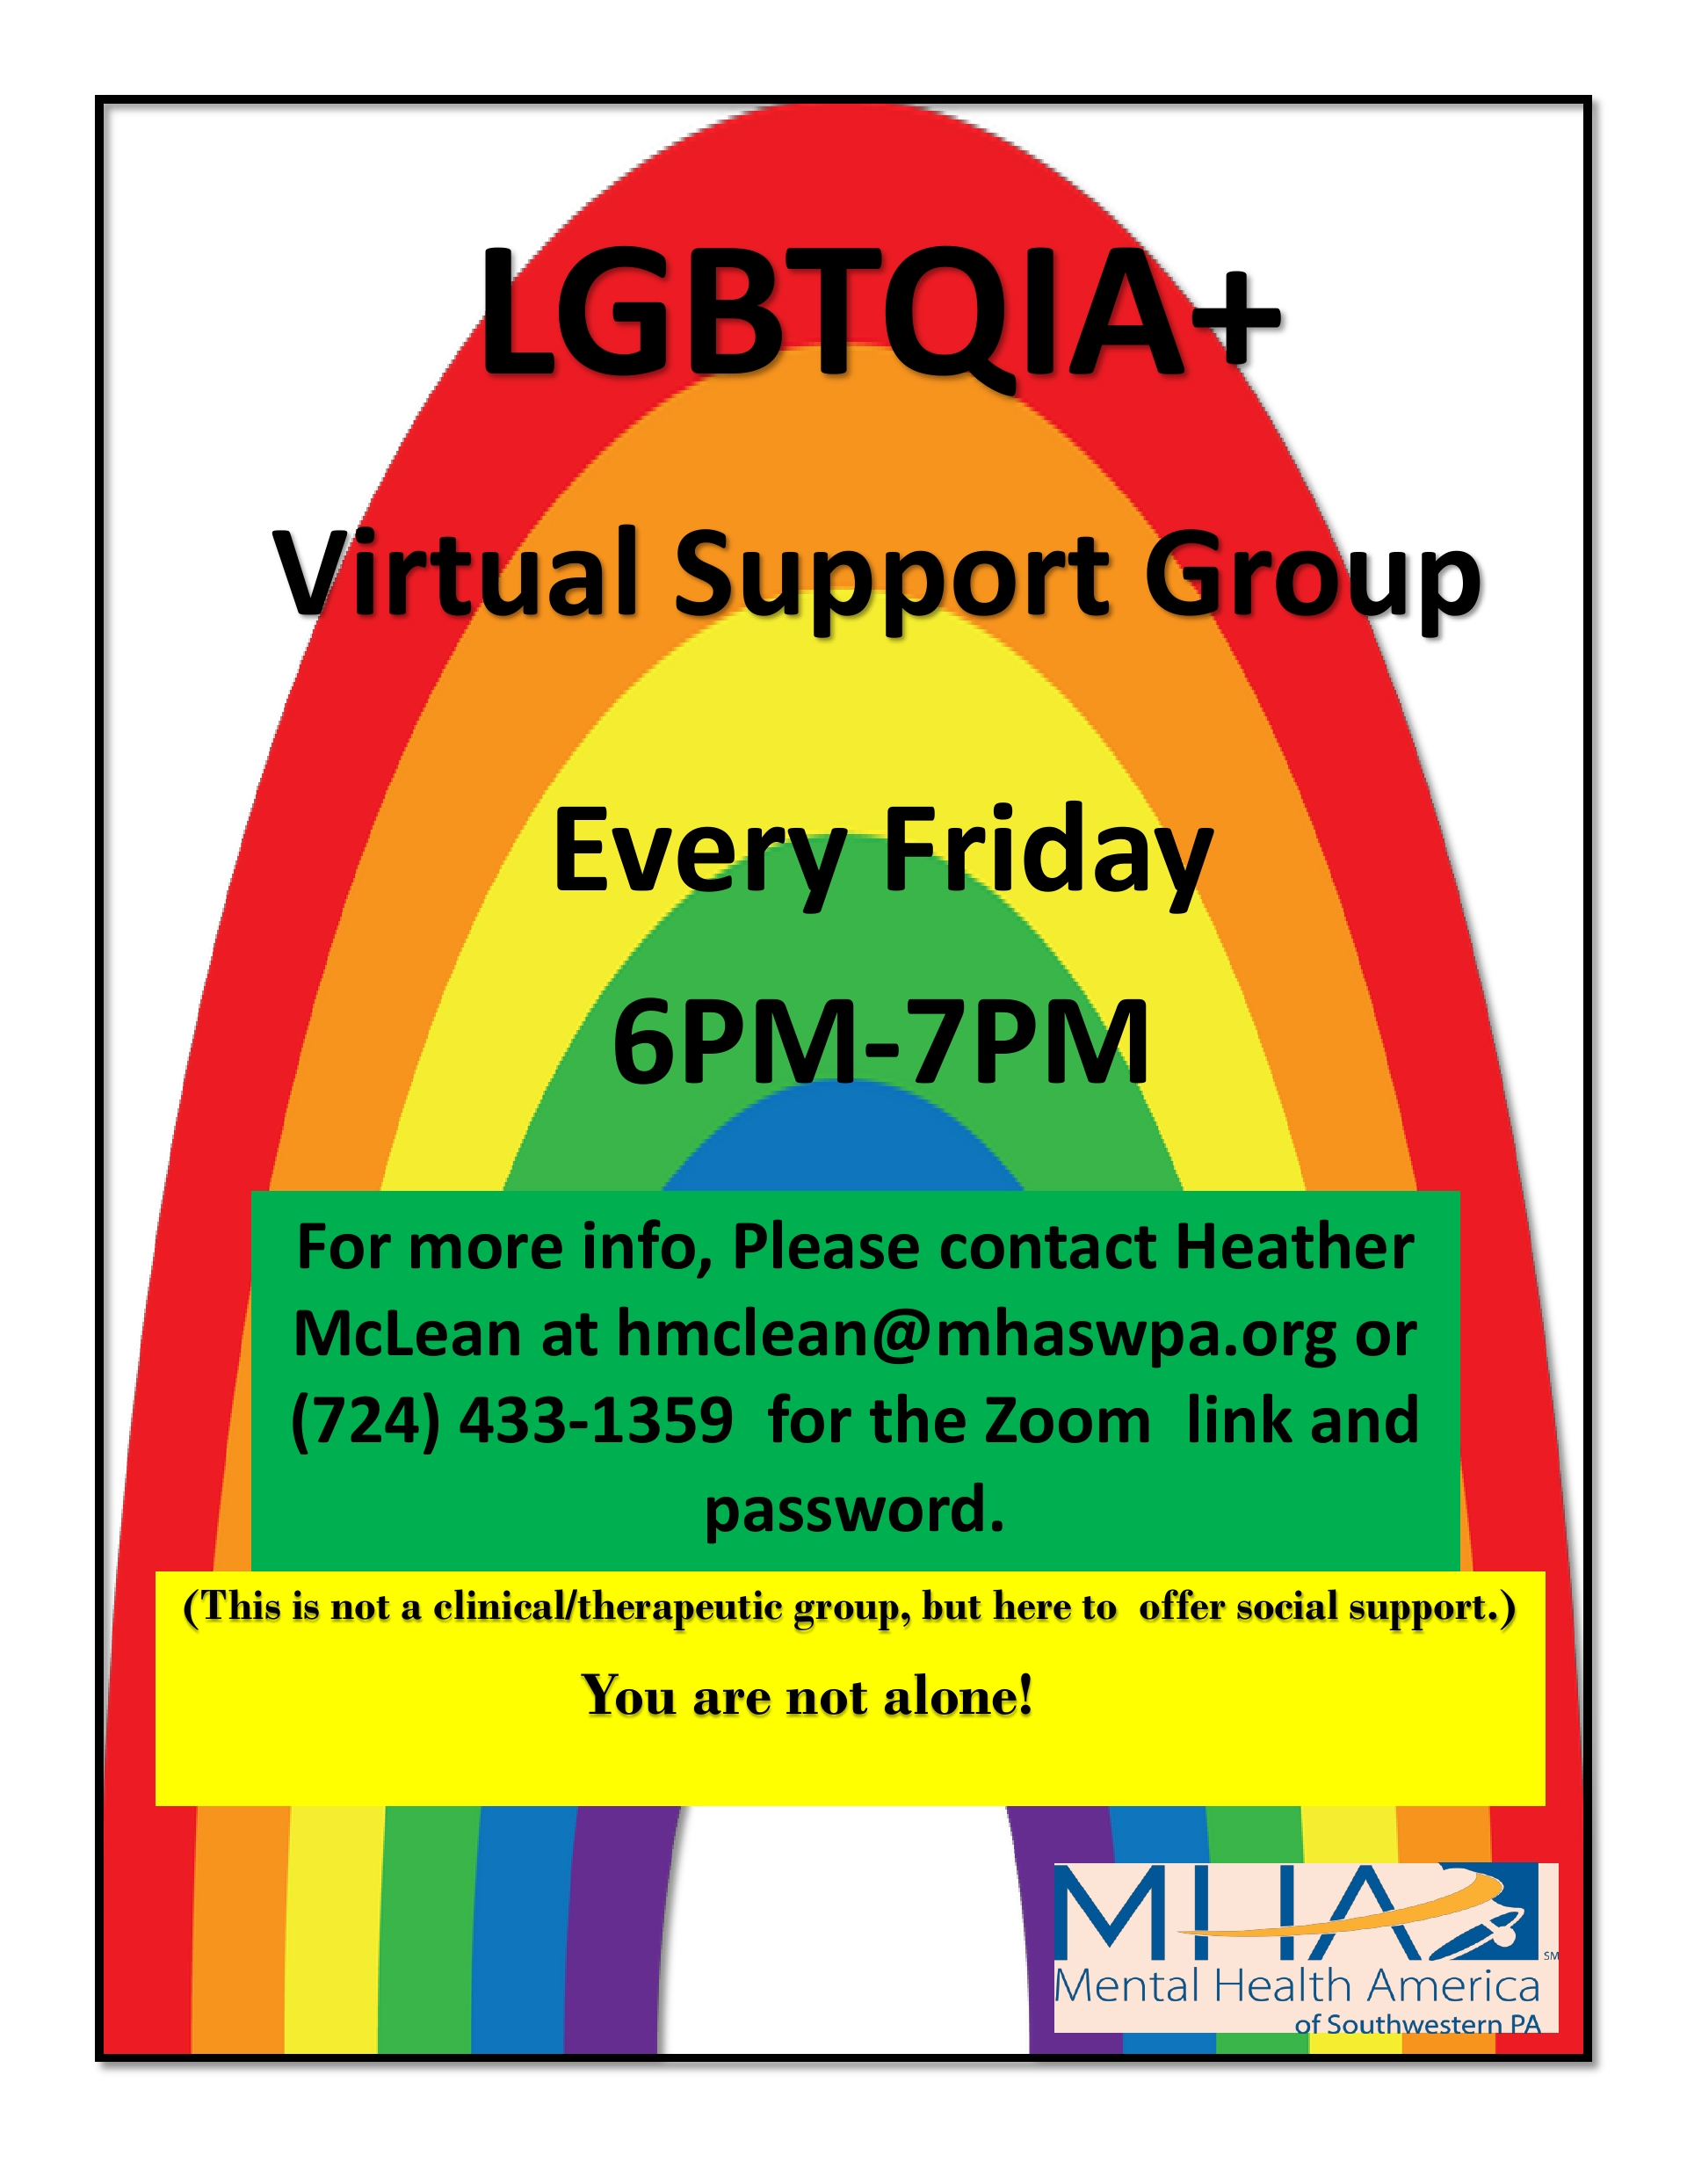 LGBTQIA+ Virtual Support Group! Every Friday!